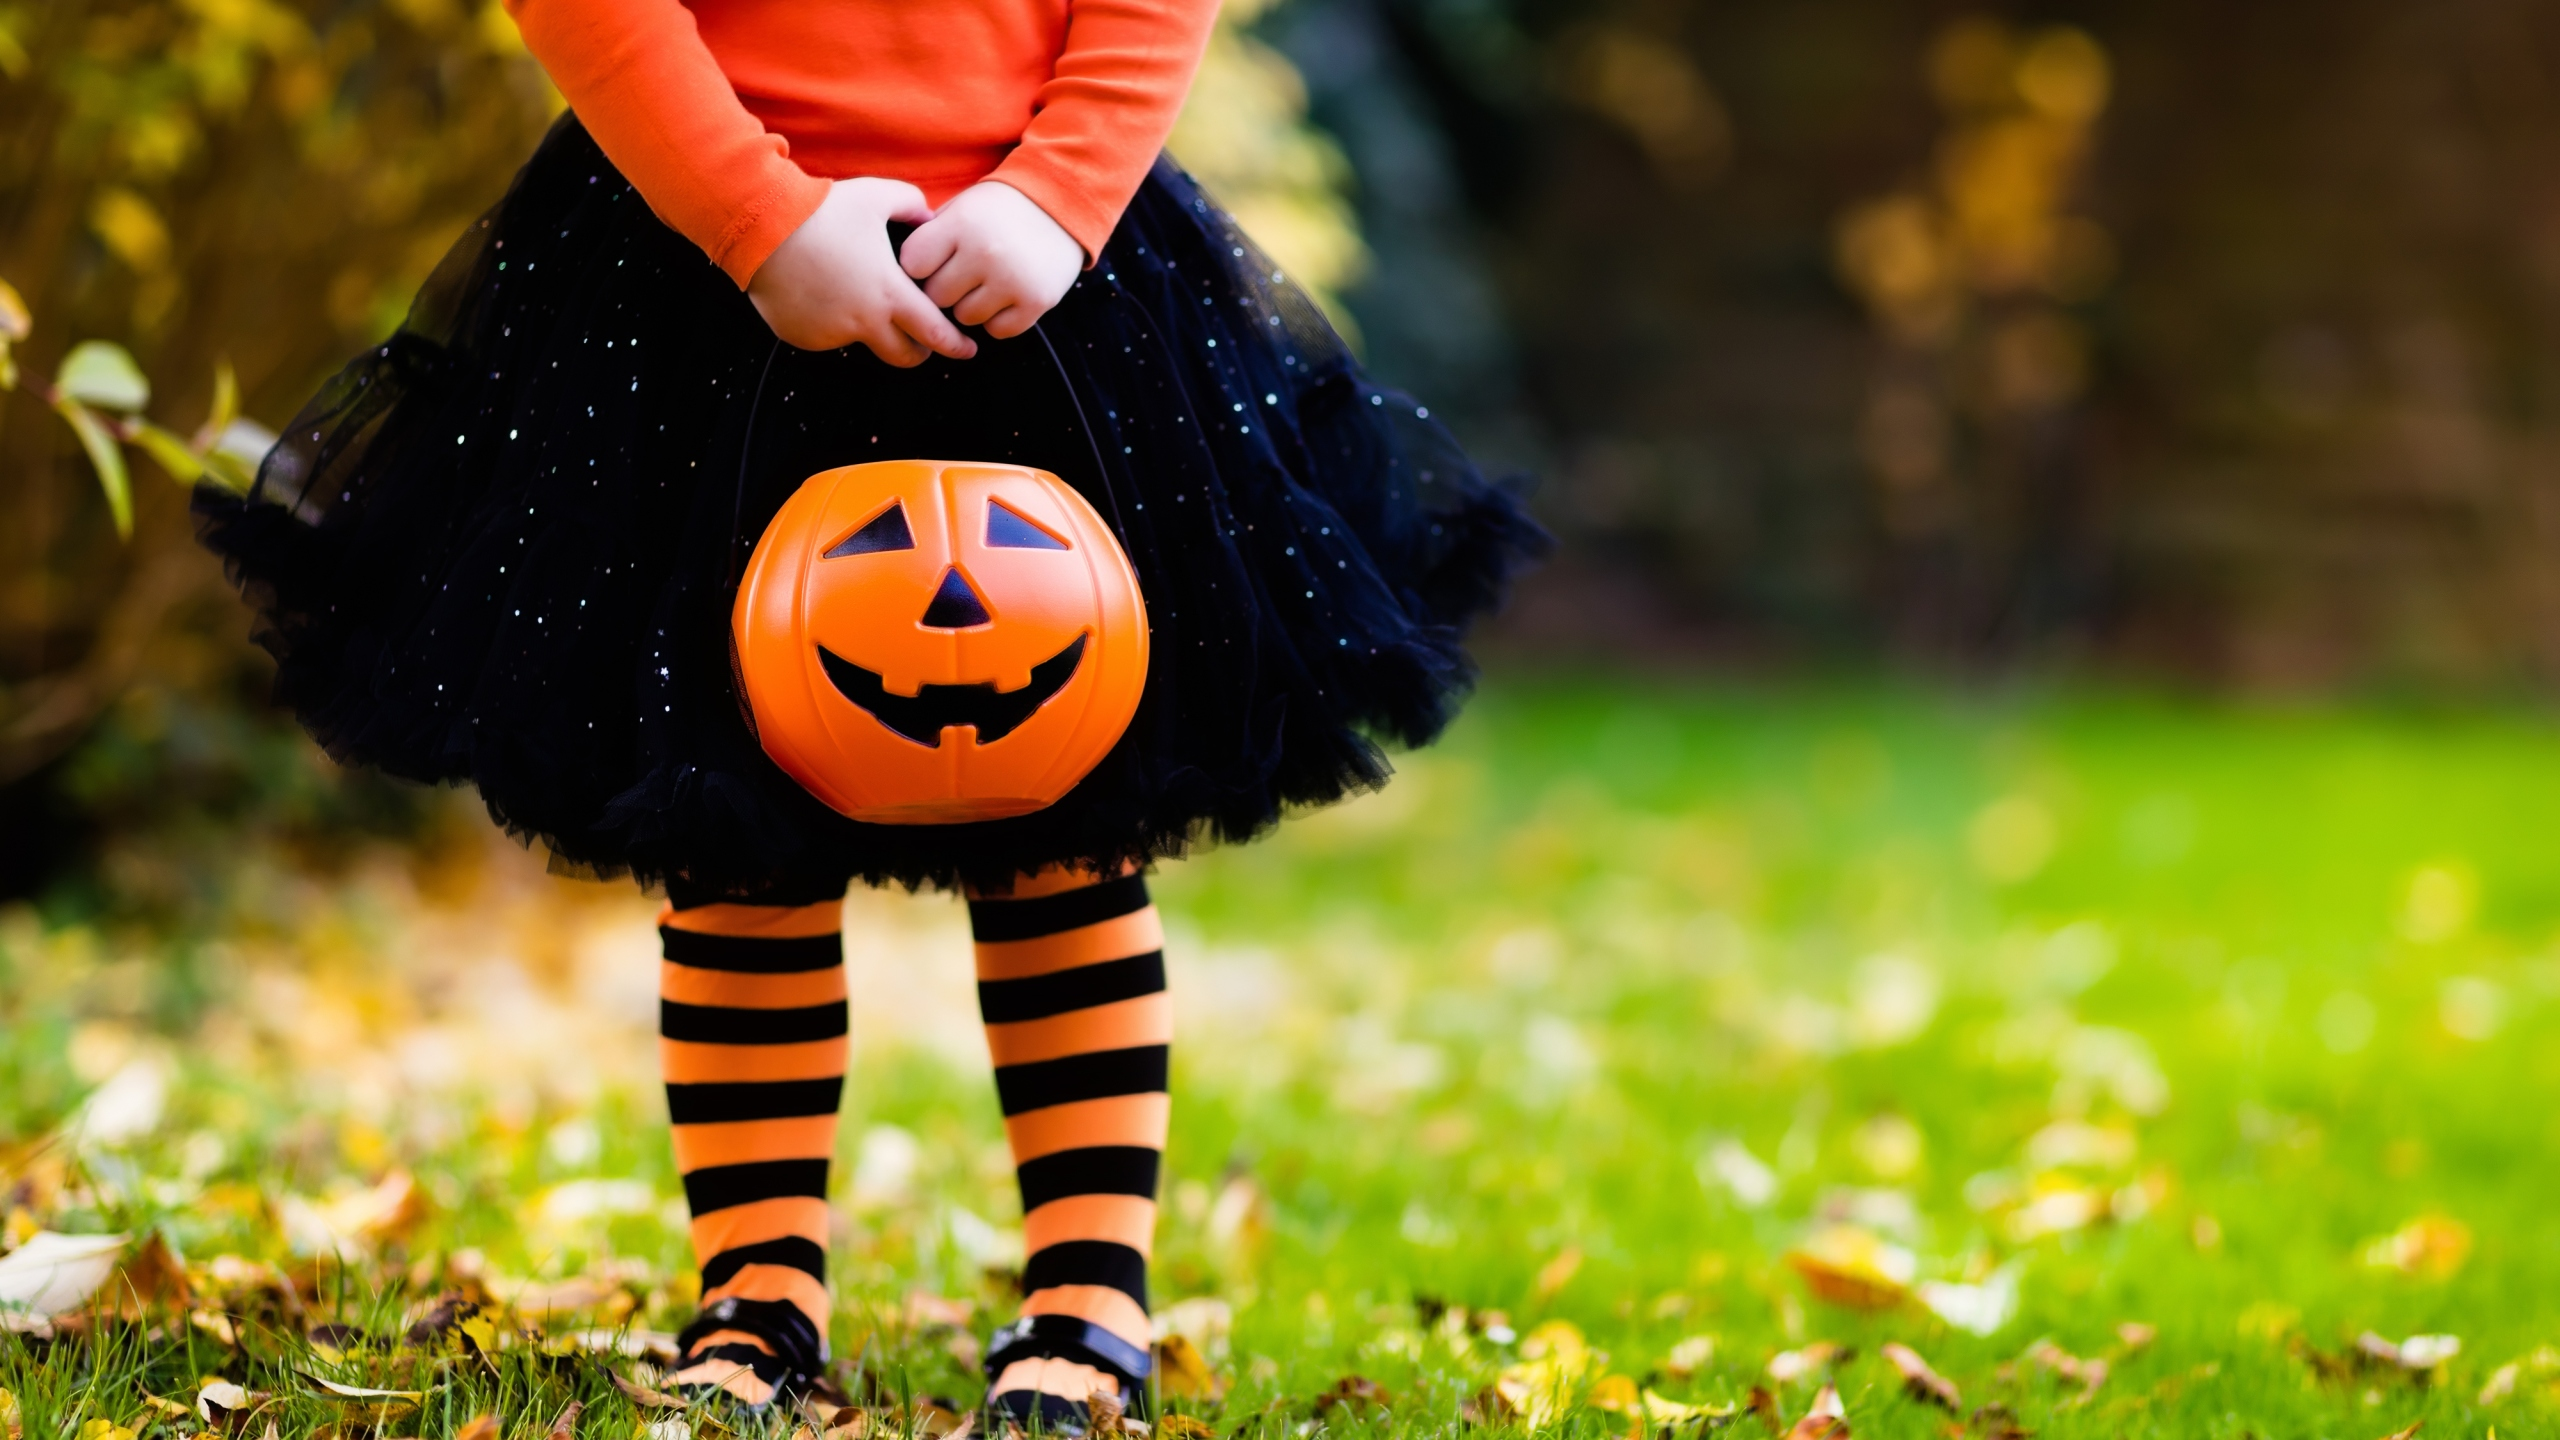 Halloween 2020 Hampton Roads Halloween 2020 Happenings: Drive thru trunk or treat in Elizabeth